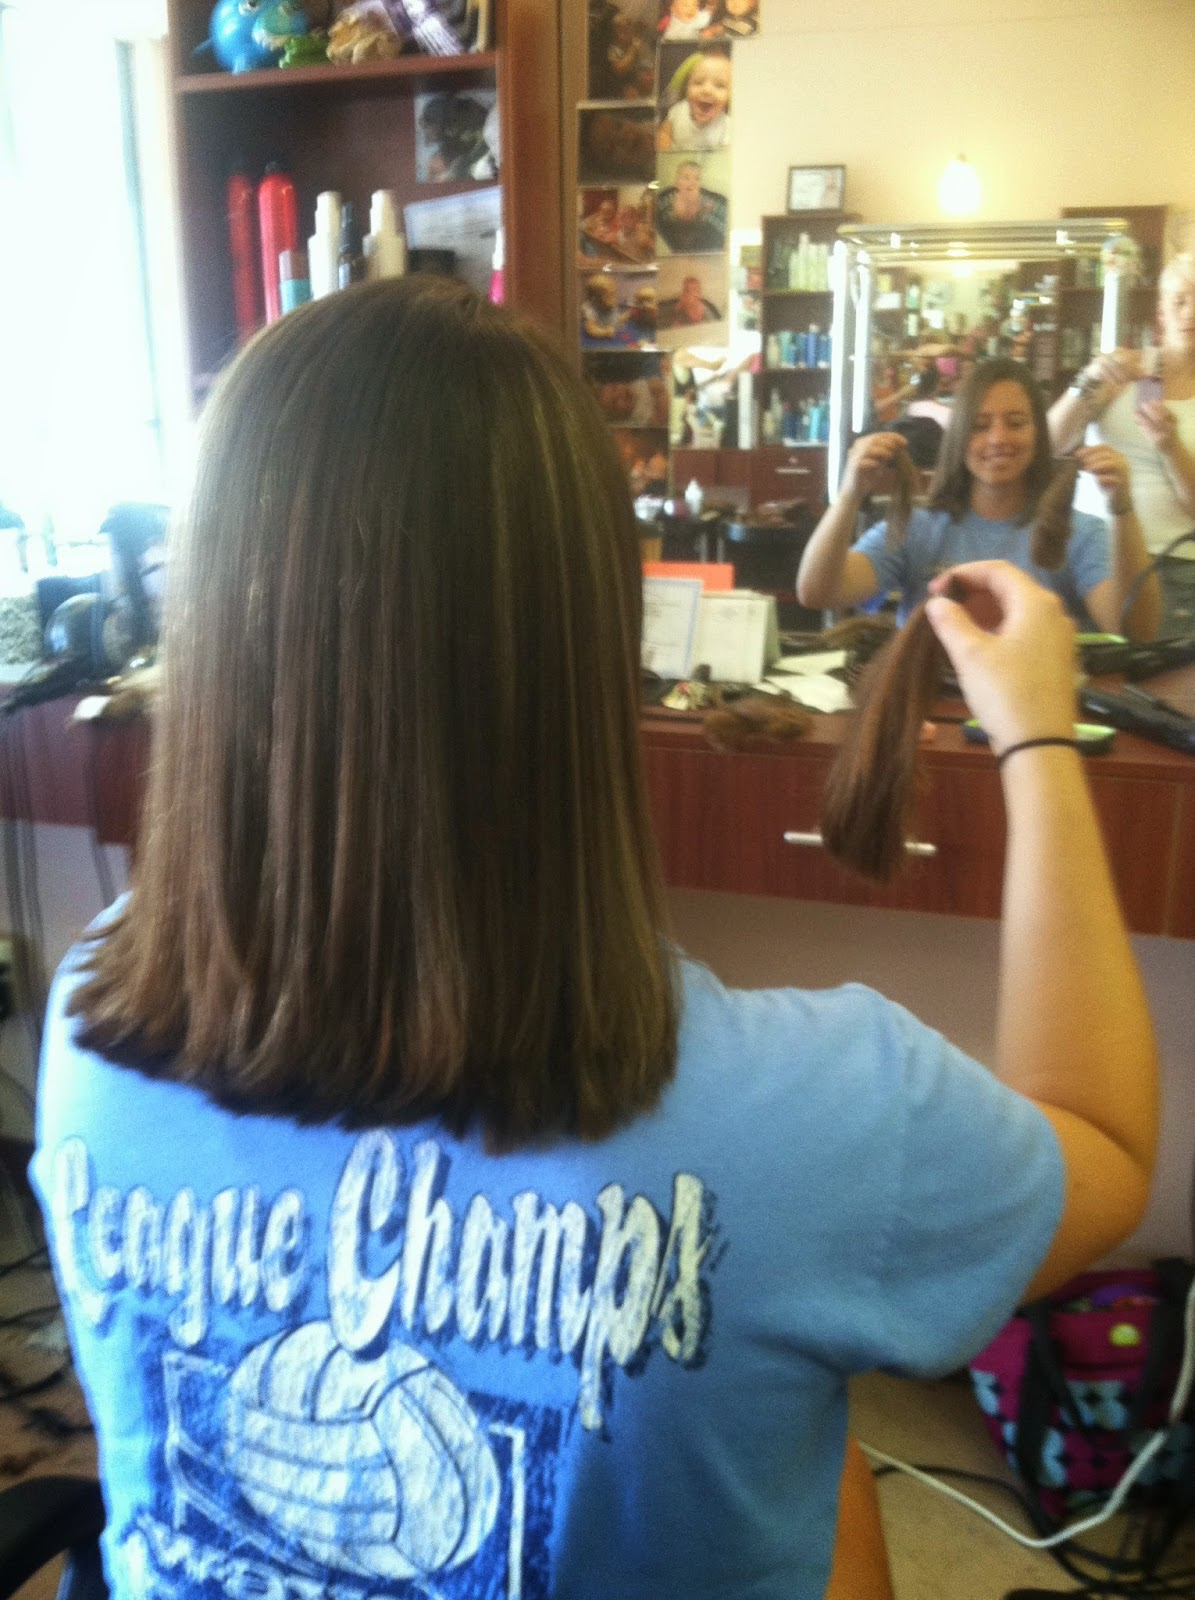 30 Things To Do Before Turning 30 2 Donate Hair To Locks Of Love